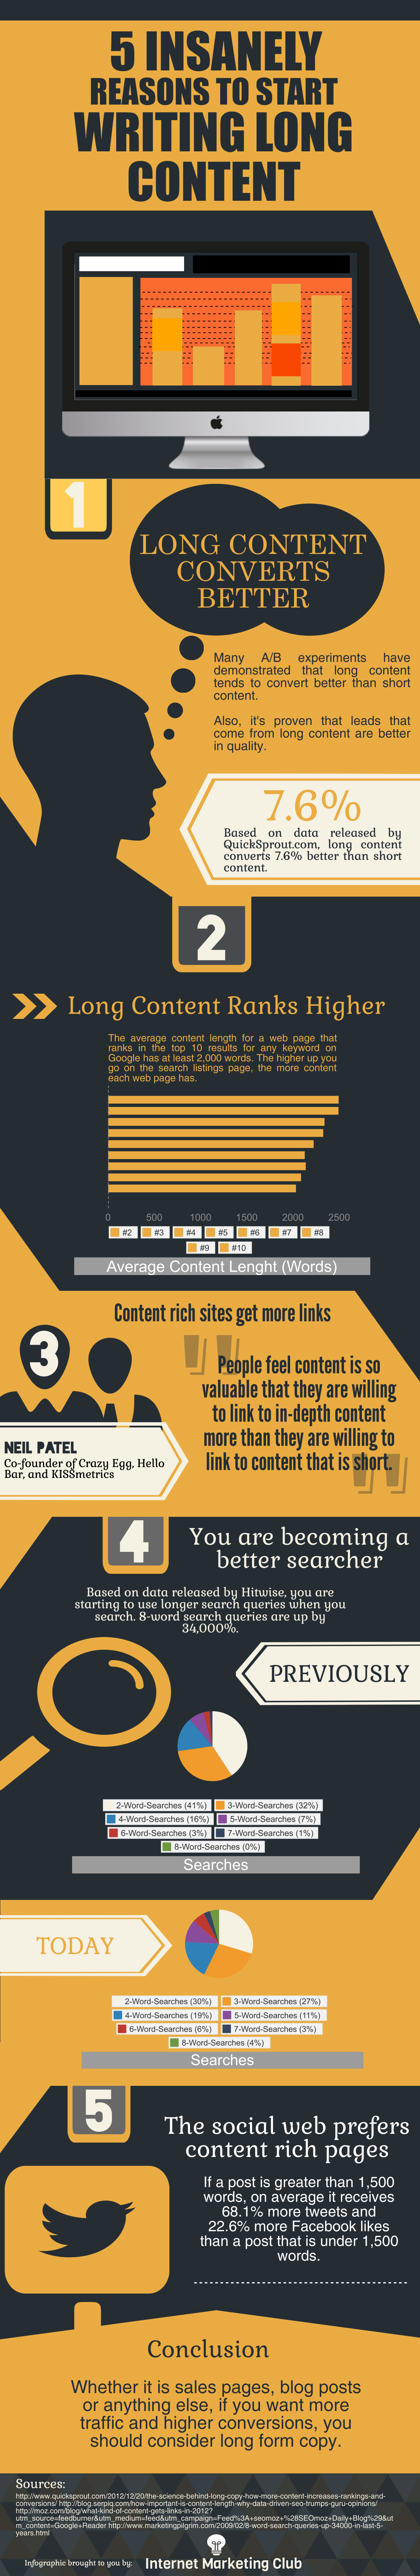 5-insanely-reasons-to-start-writing-long-content_5490feec15d6e